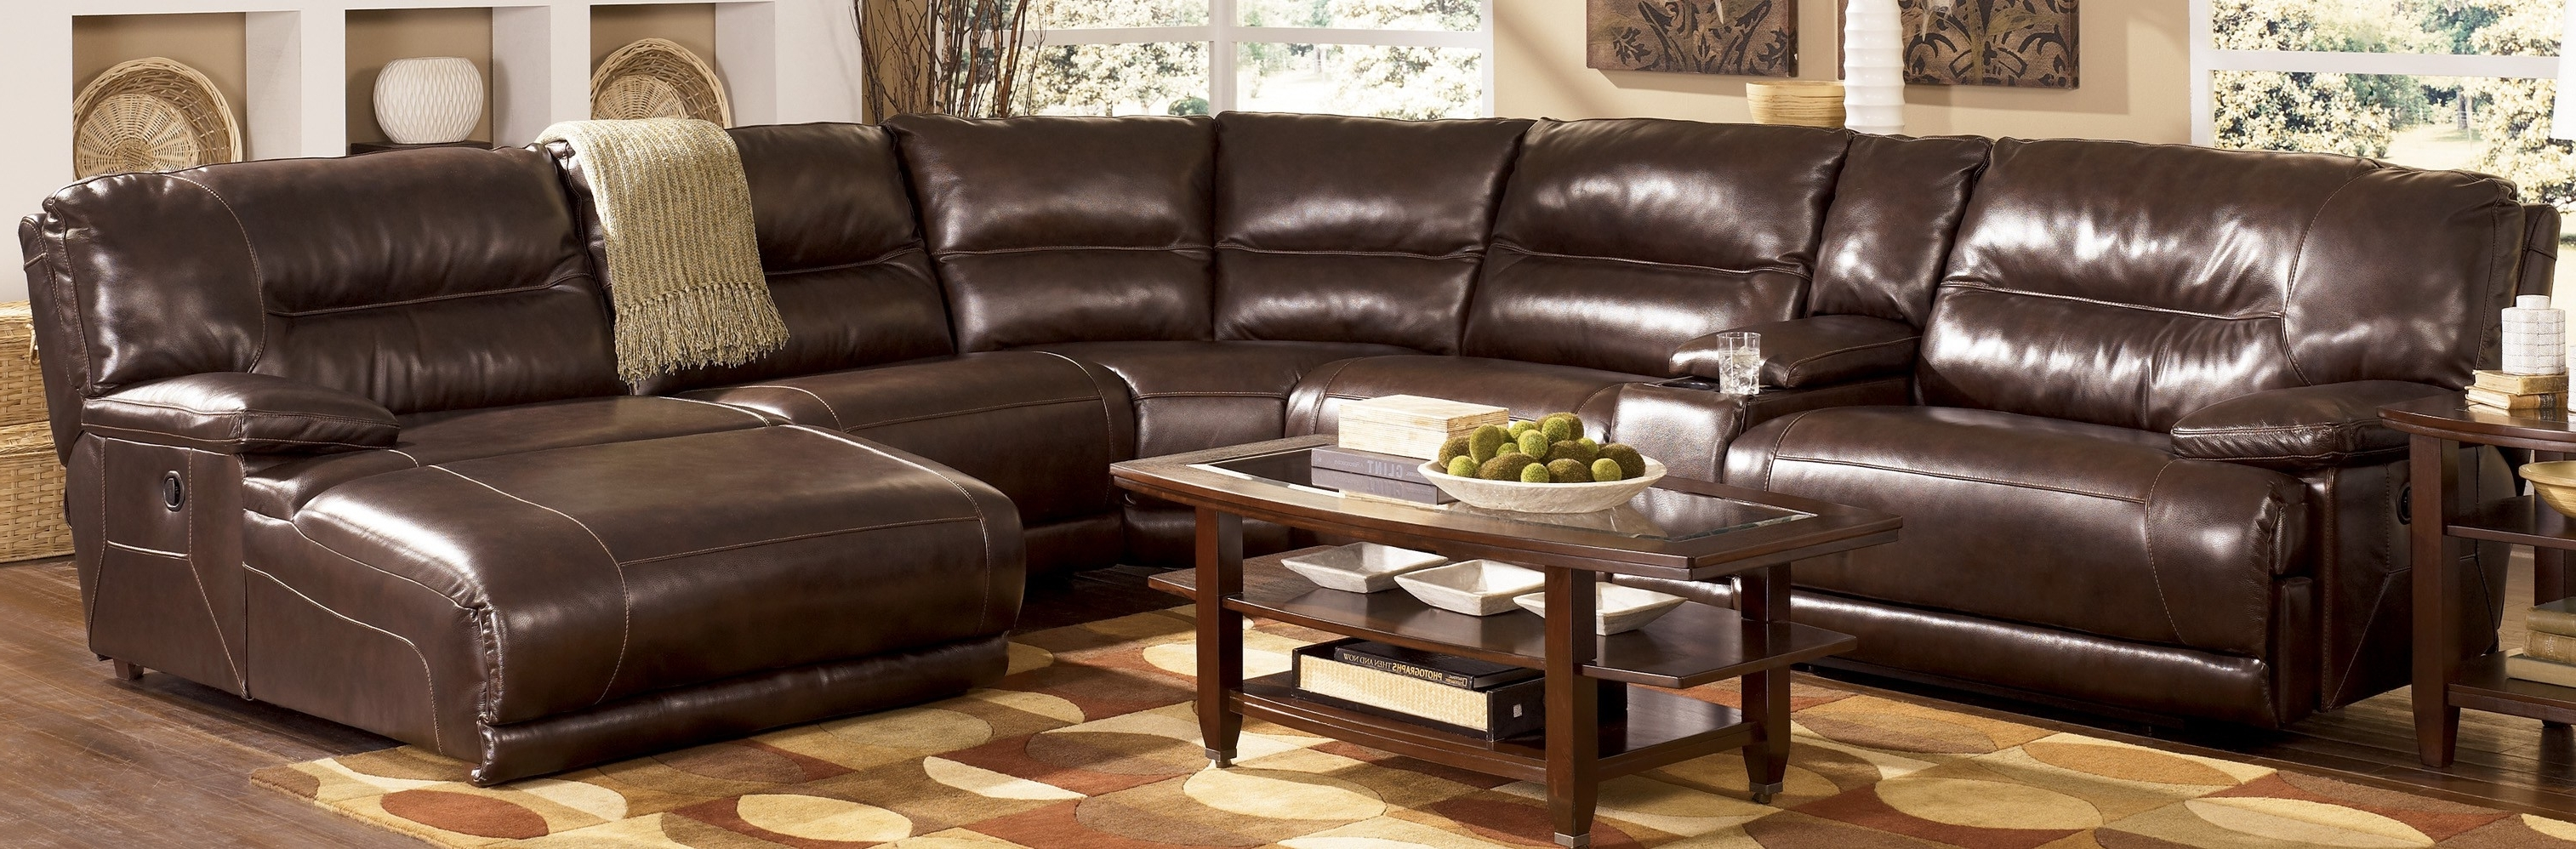 Popular Reclining Sectionals With Chaise Intended For Leather Sectional Sleeper Sofa Sectional Sofas With Recliners And (View 12 of 15)